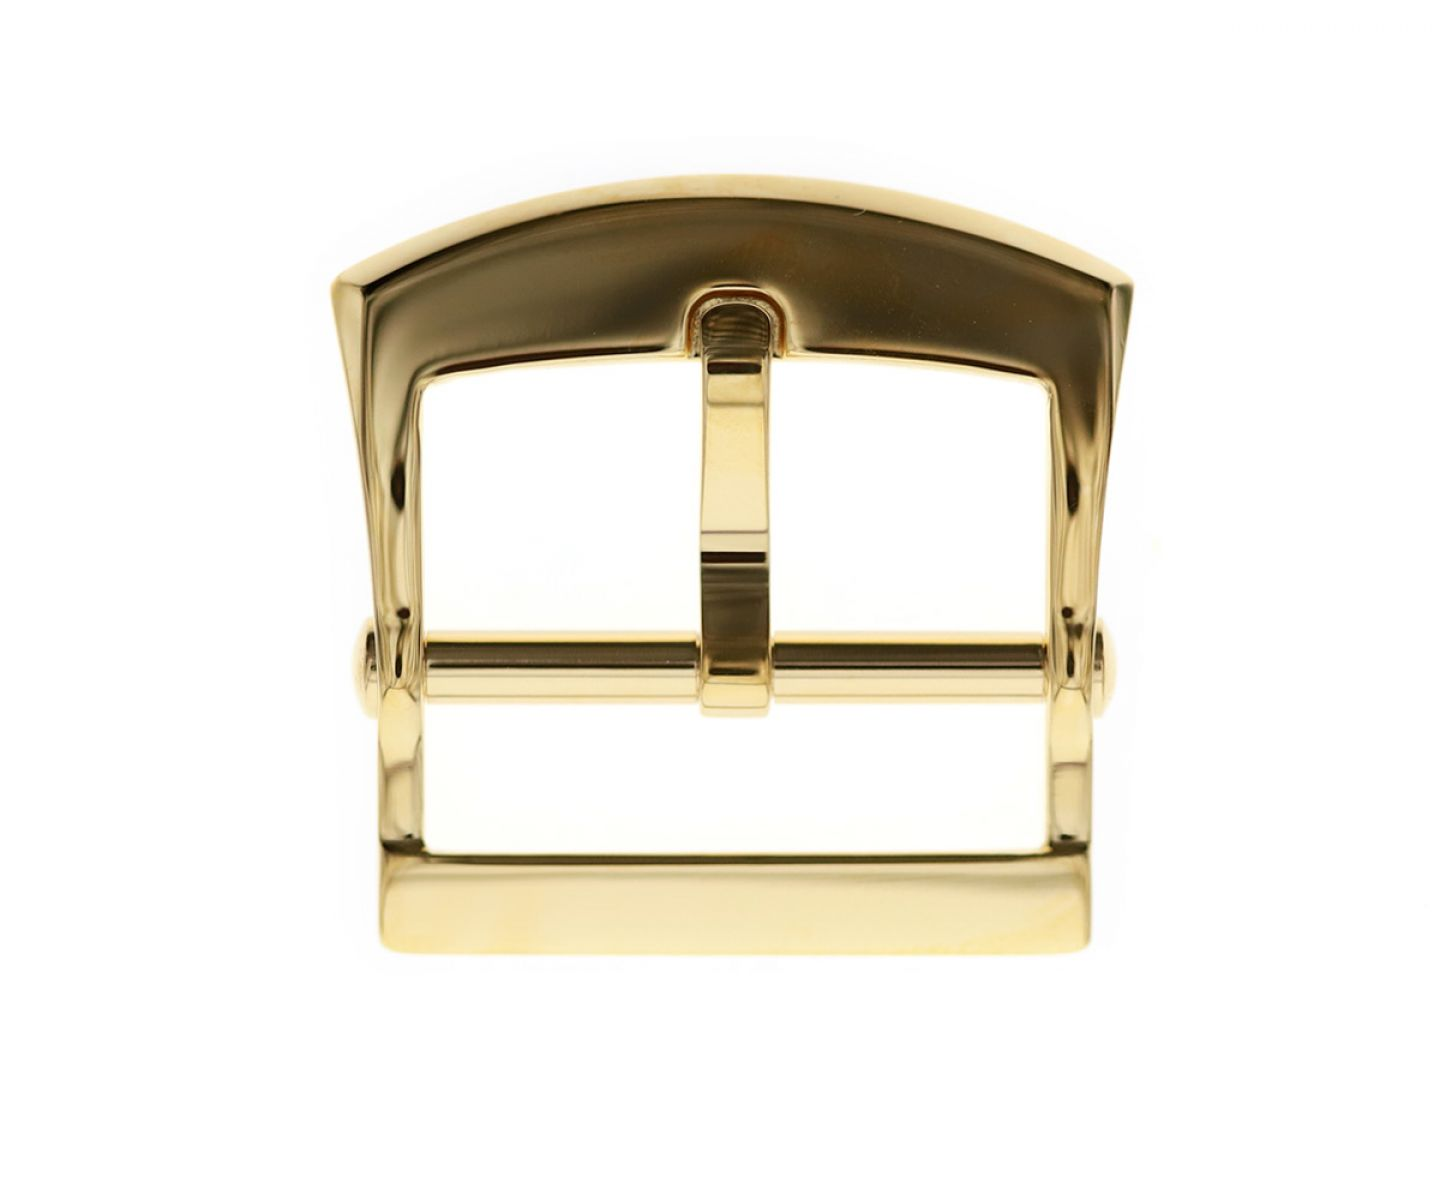 Stainless Steel High Grade Buckle 20mm. Yellow Gloss